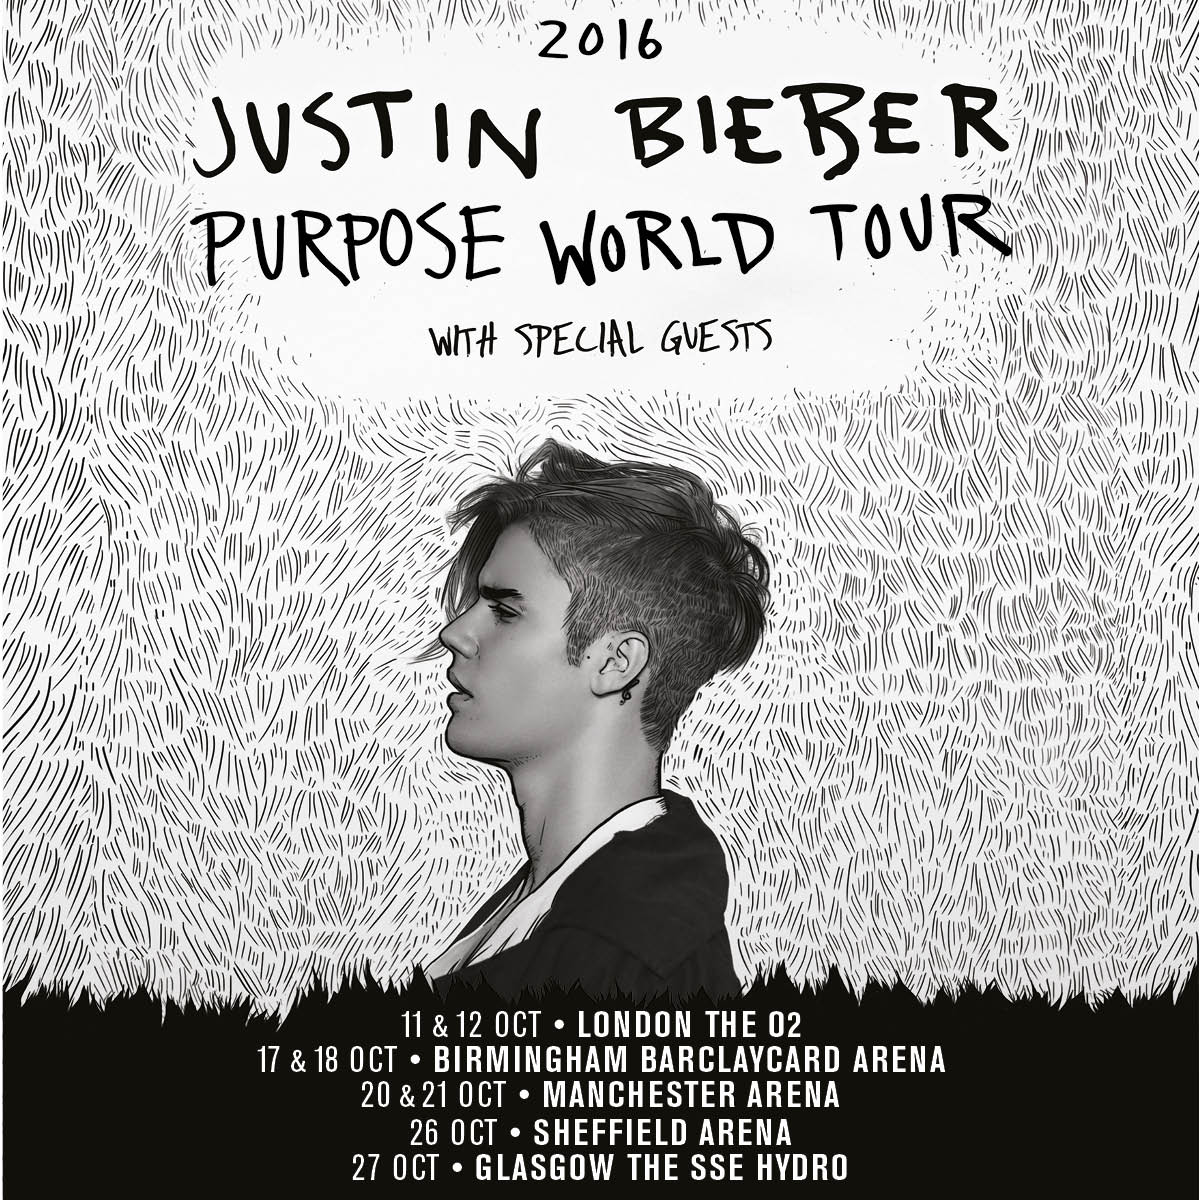 ANNOUNCEMENT: @justinbieber brings his #PurposeWorldTour to the UK - Oct 2016. Tickets on sale 9am Thurs 17 Dec! https://t.co/uocJEmShG9